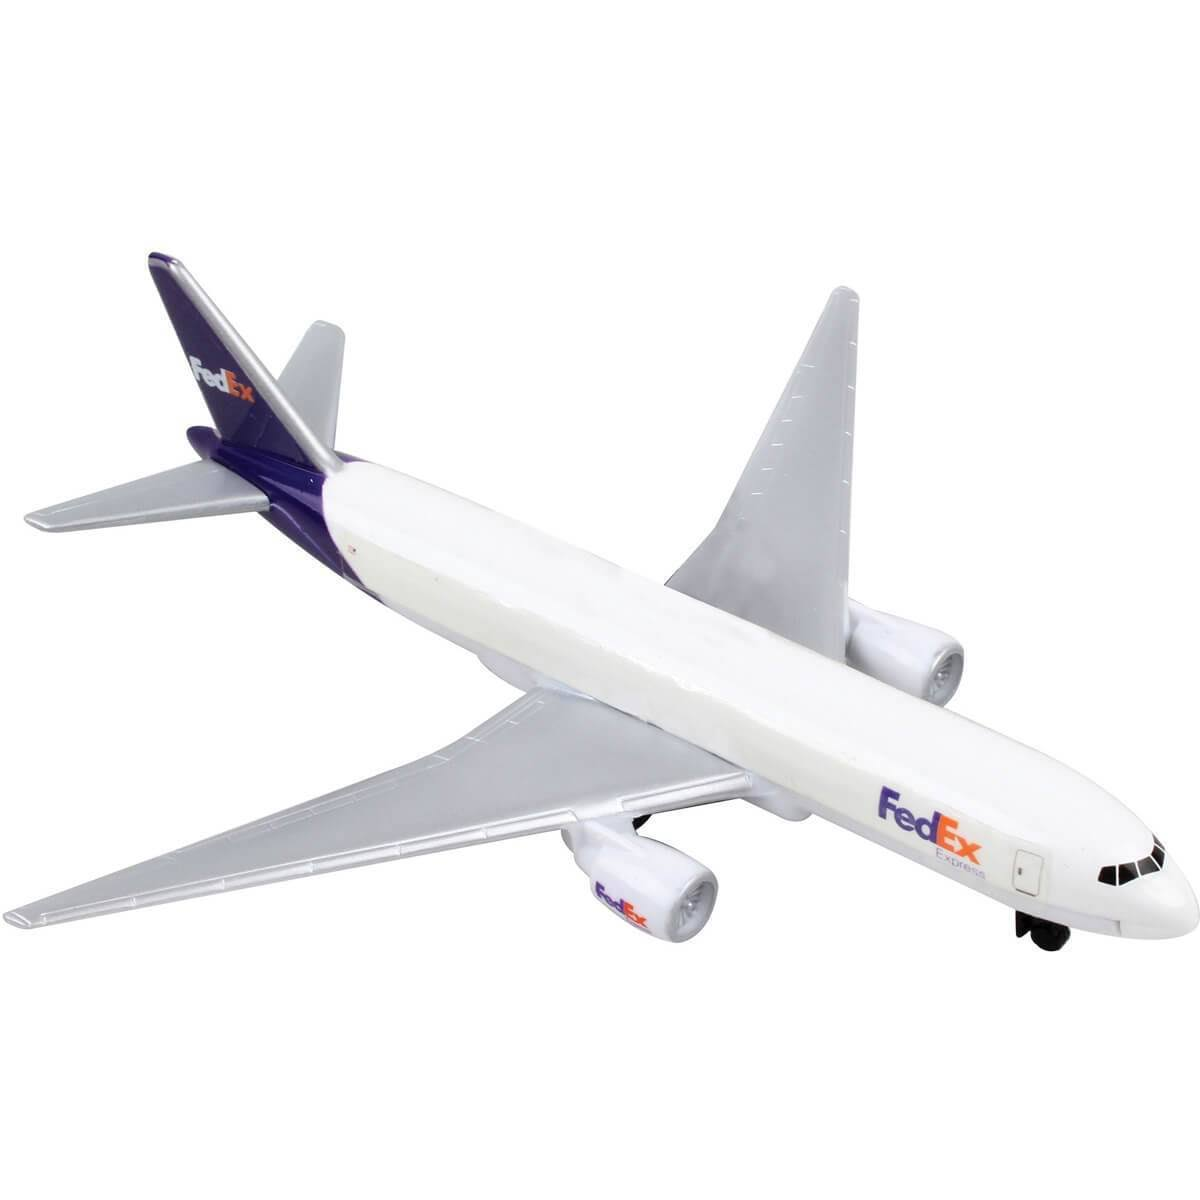 Daron FedEx Single Plane